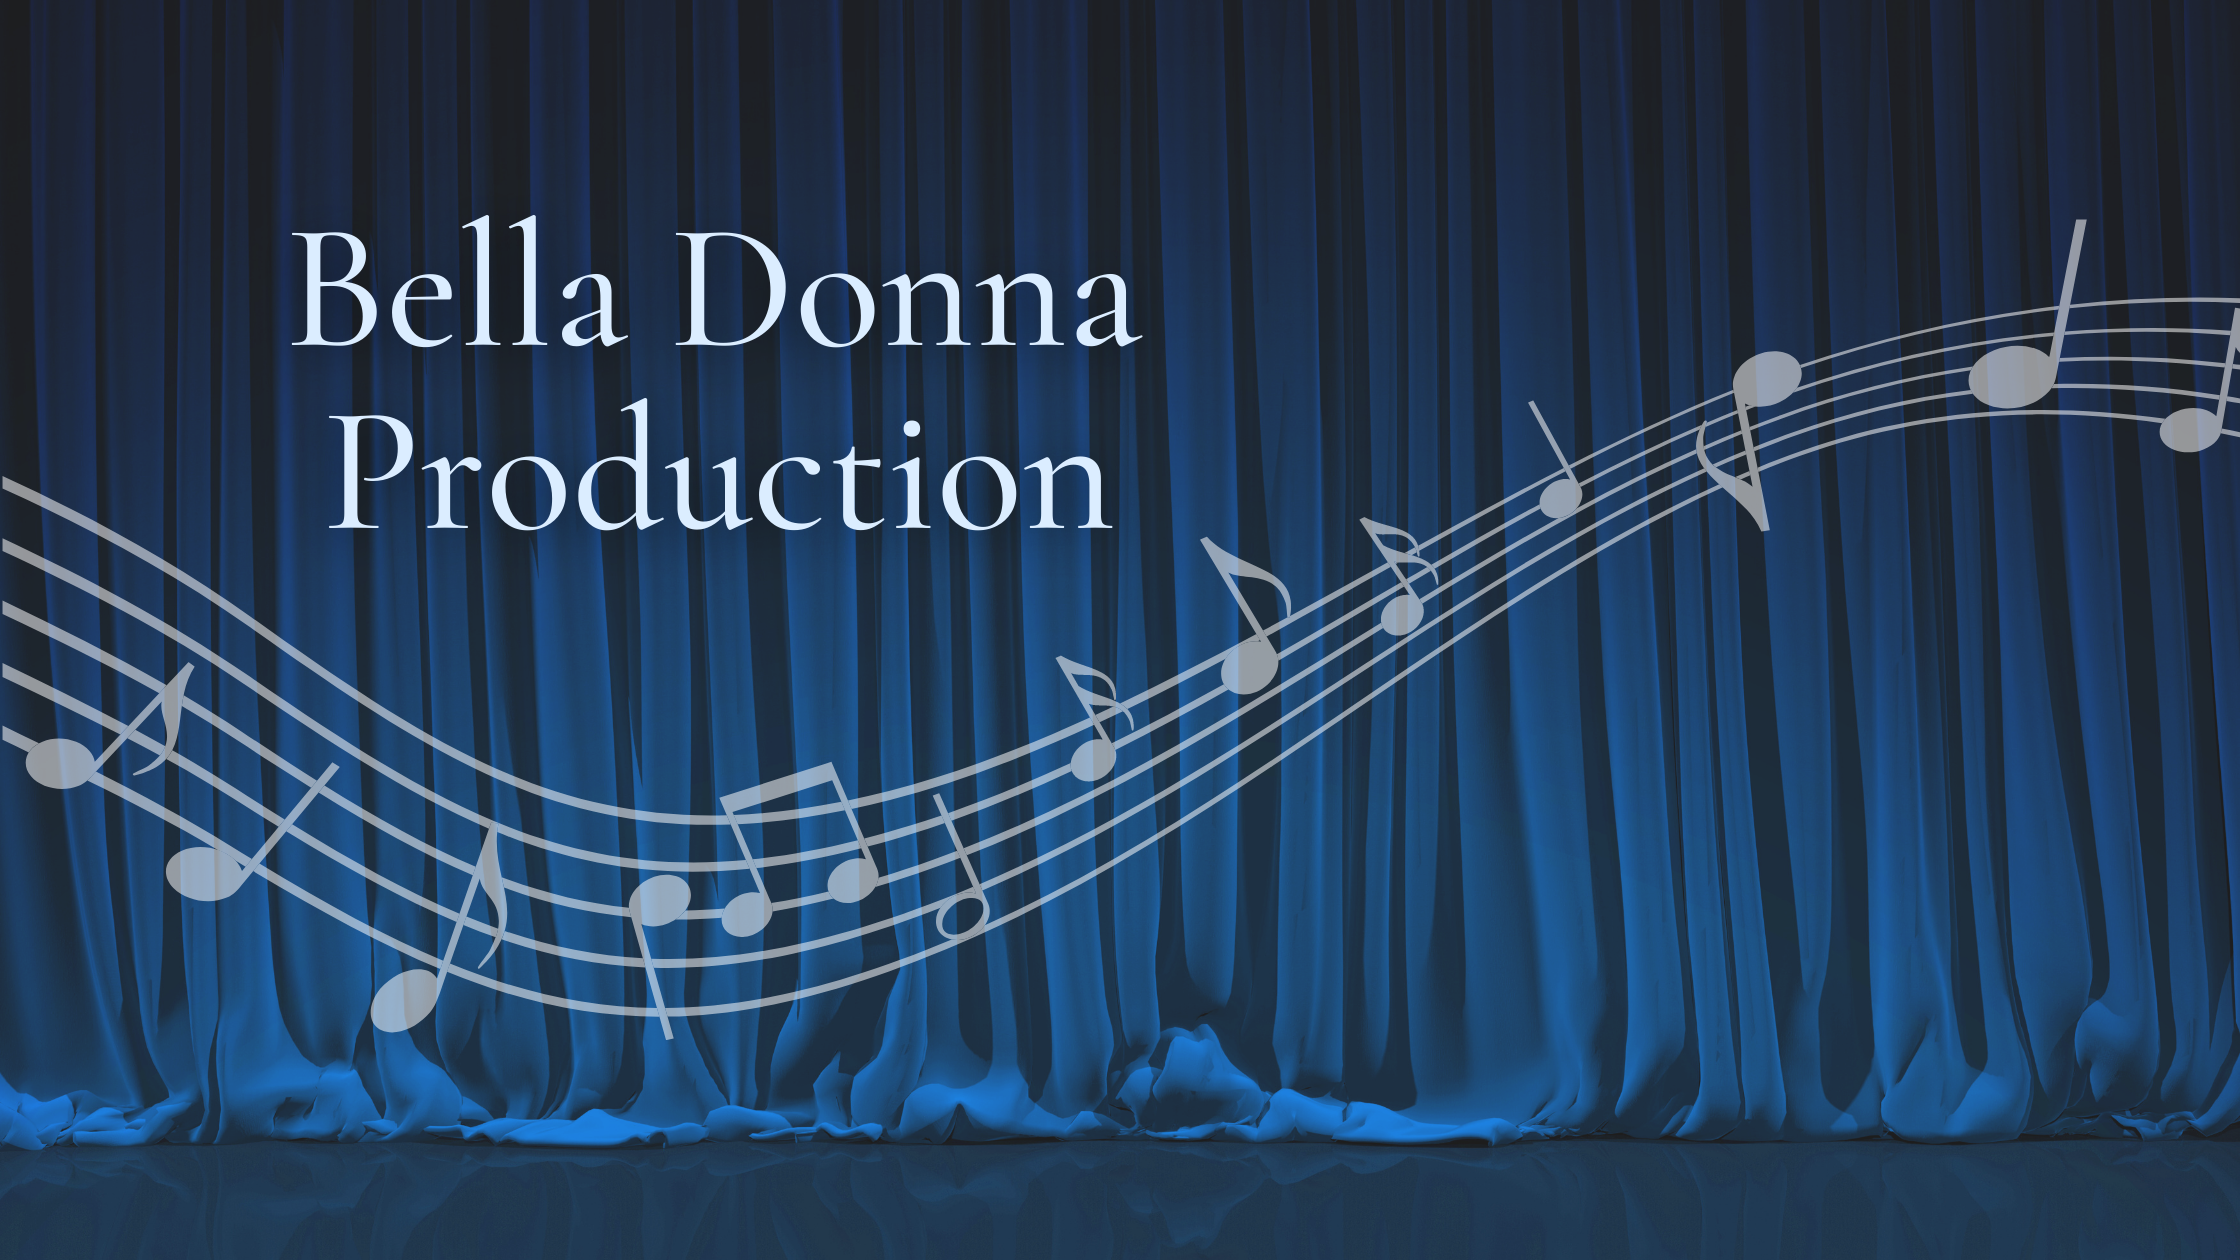 Bella Donna Production